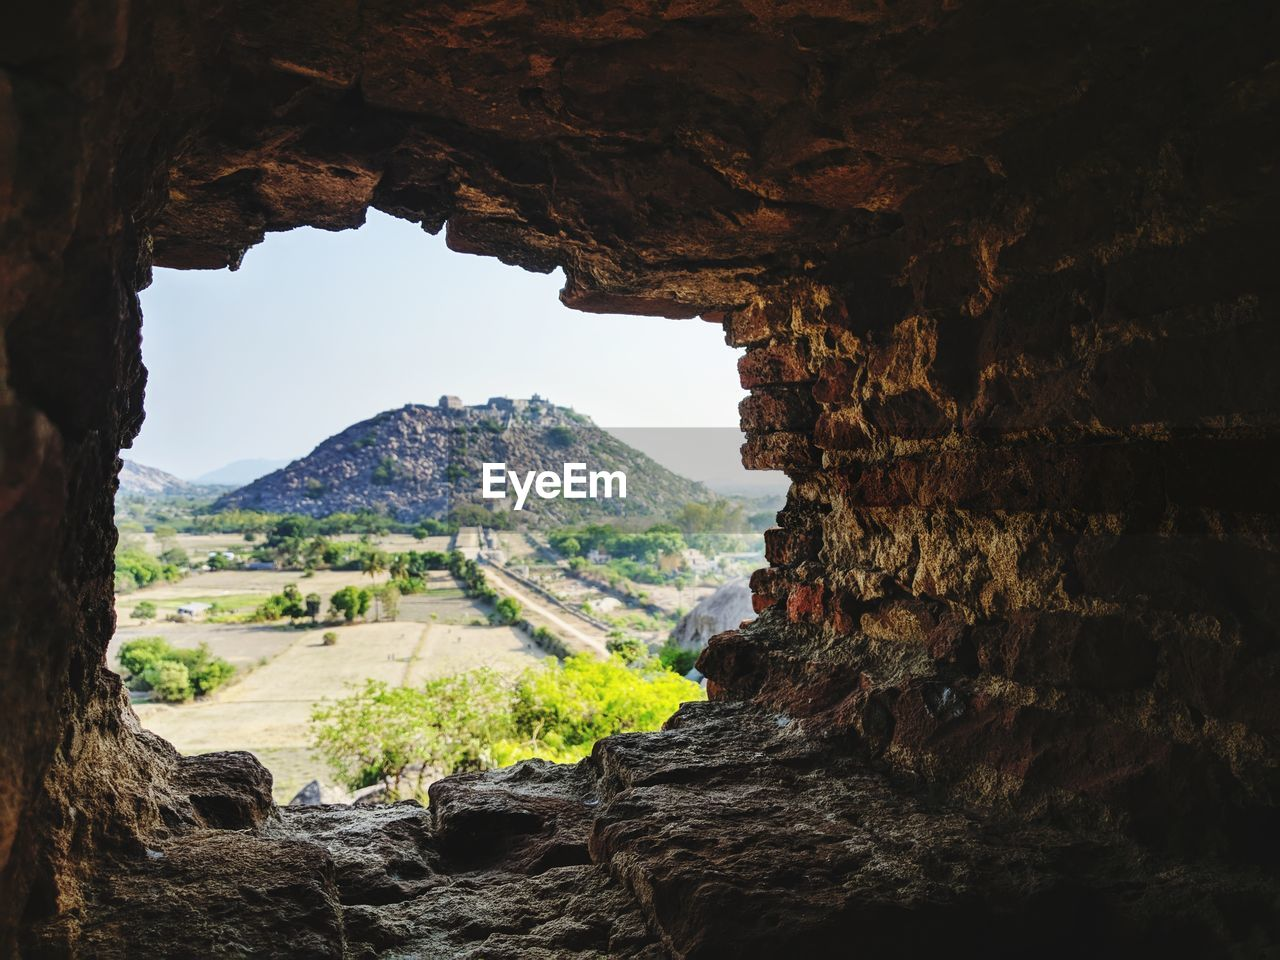 Scenic view of cave and rock formation against sky